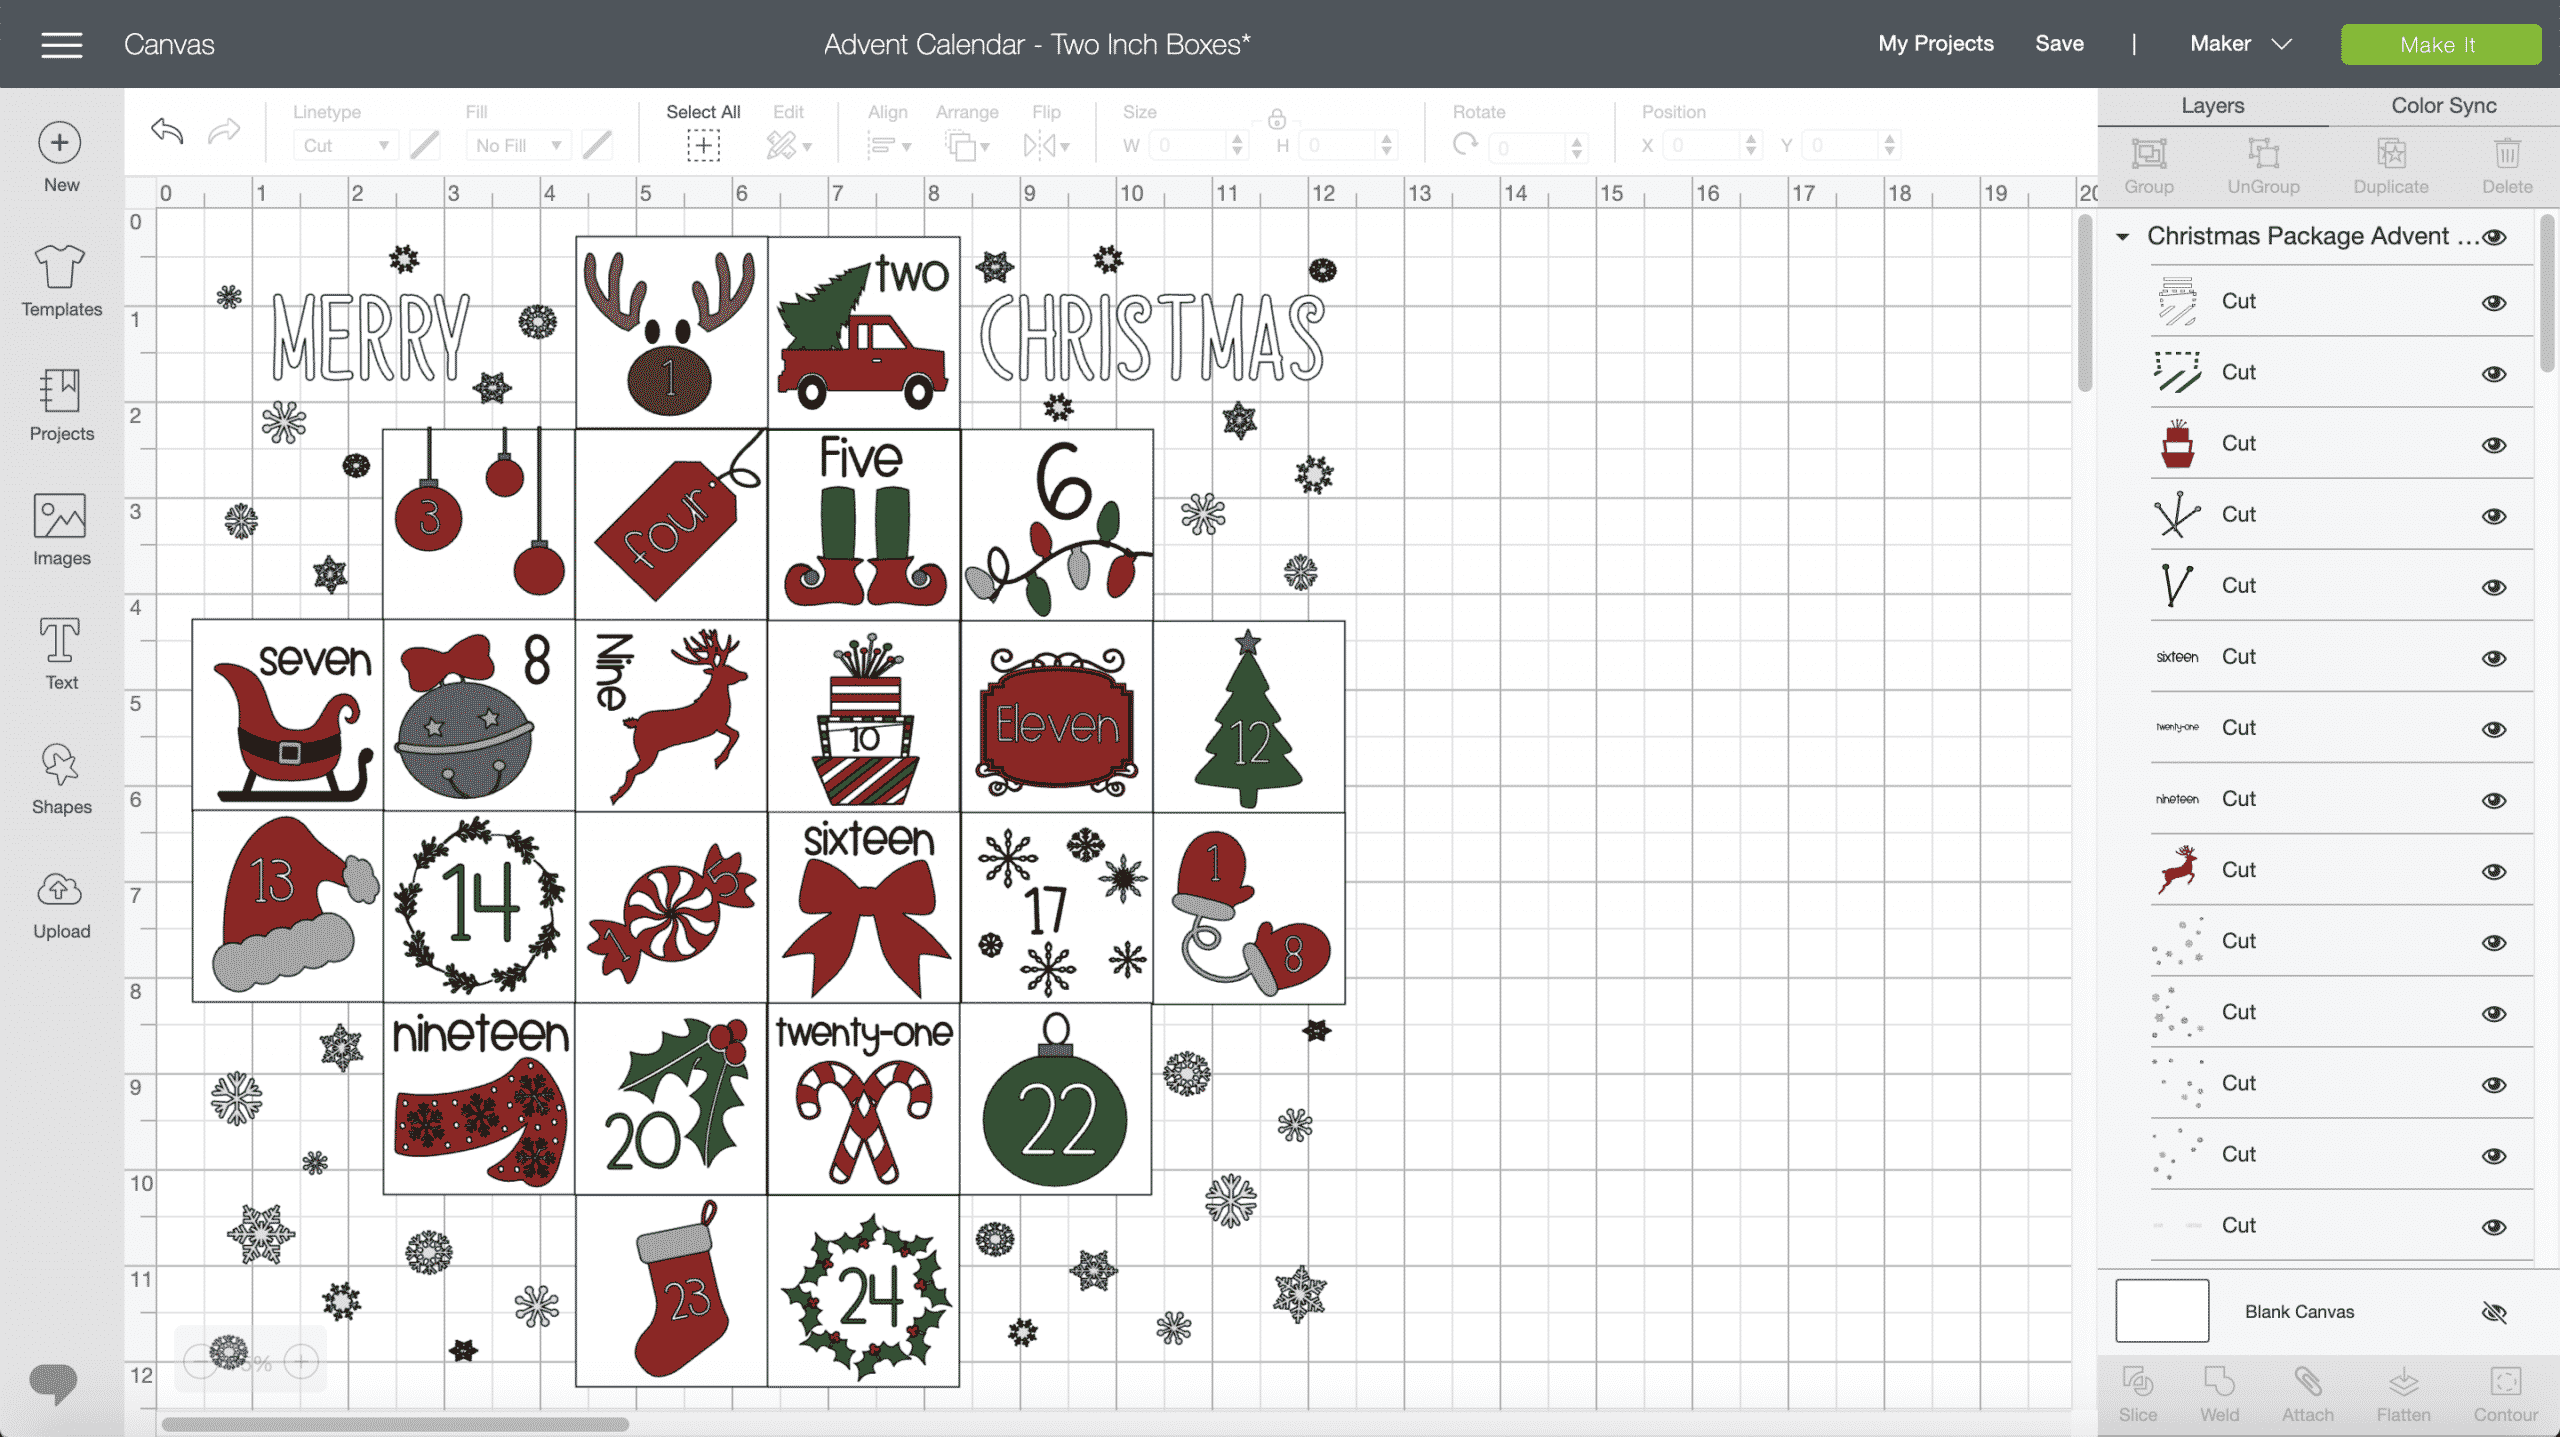 Boxed Christmas Gift Advent Calendar_Cricut Design Space